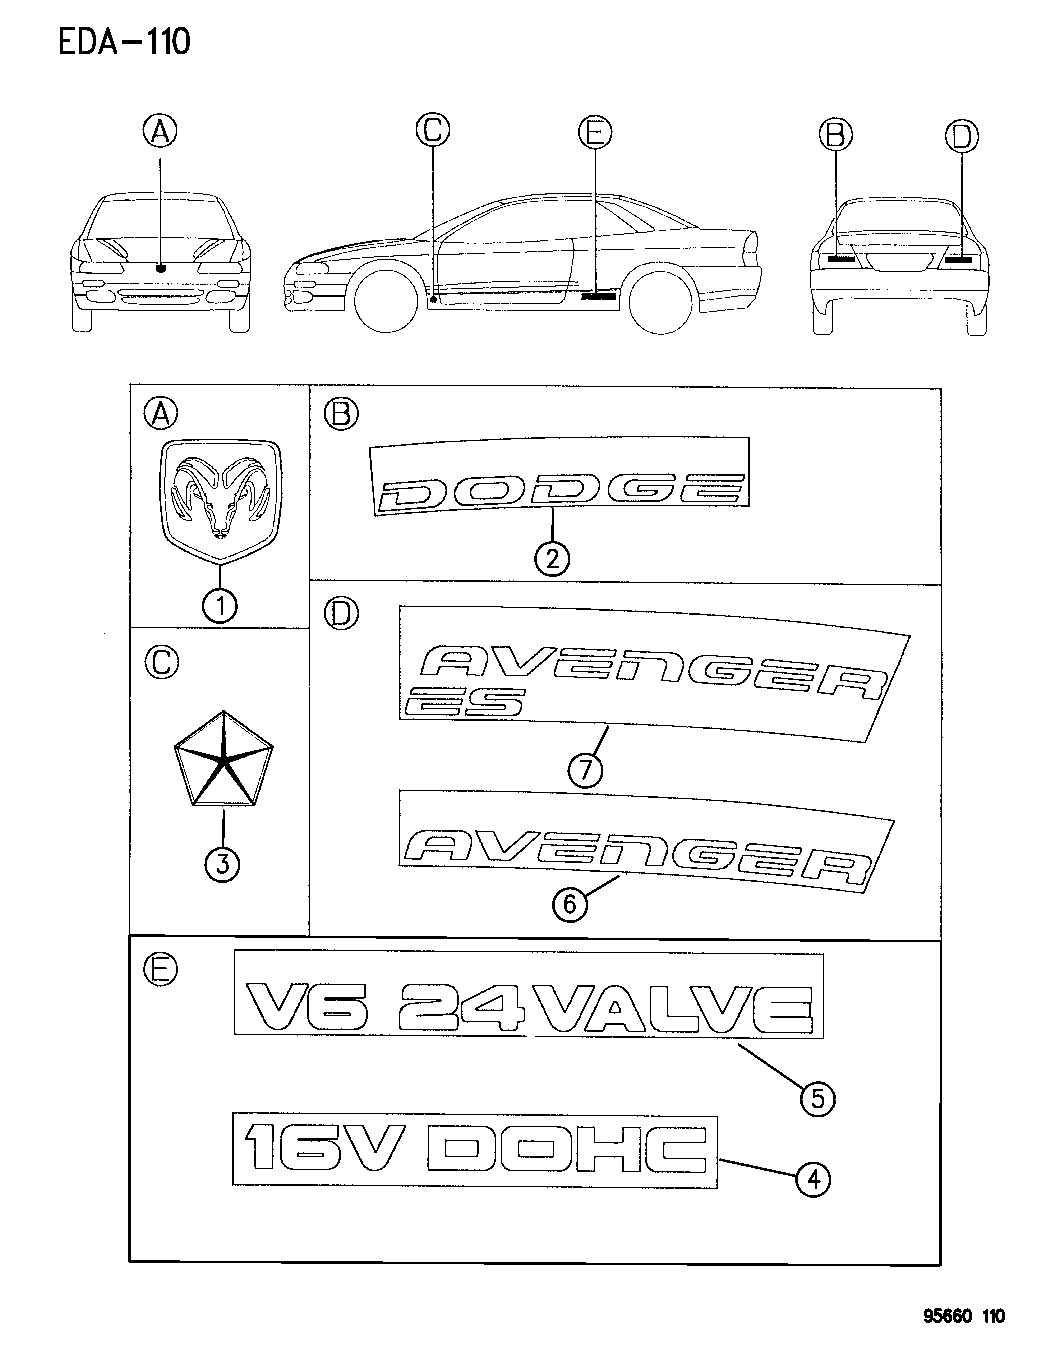 1995 Dodge Avenger Nameplates Decals Emblems Engine Diagram